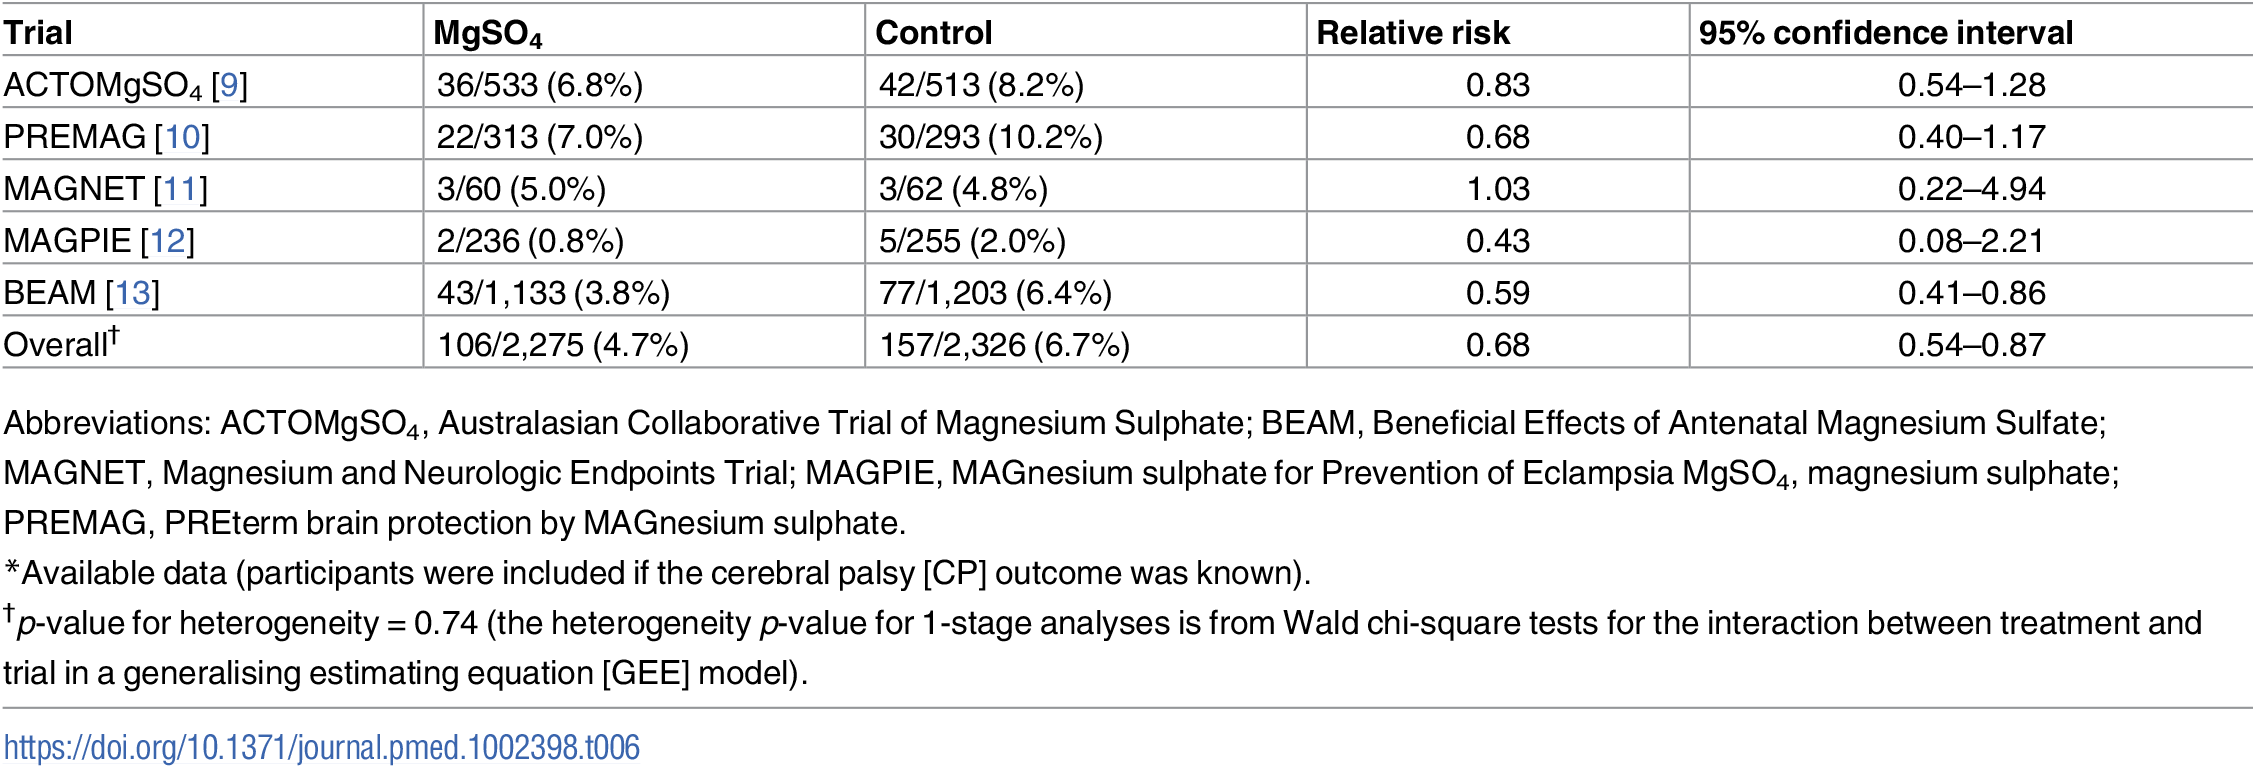 Cerebral palsy (as defined by trialists)<em class=&quot;ref&quot;>*</em> (all trials).